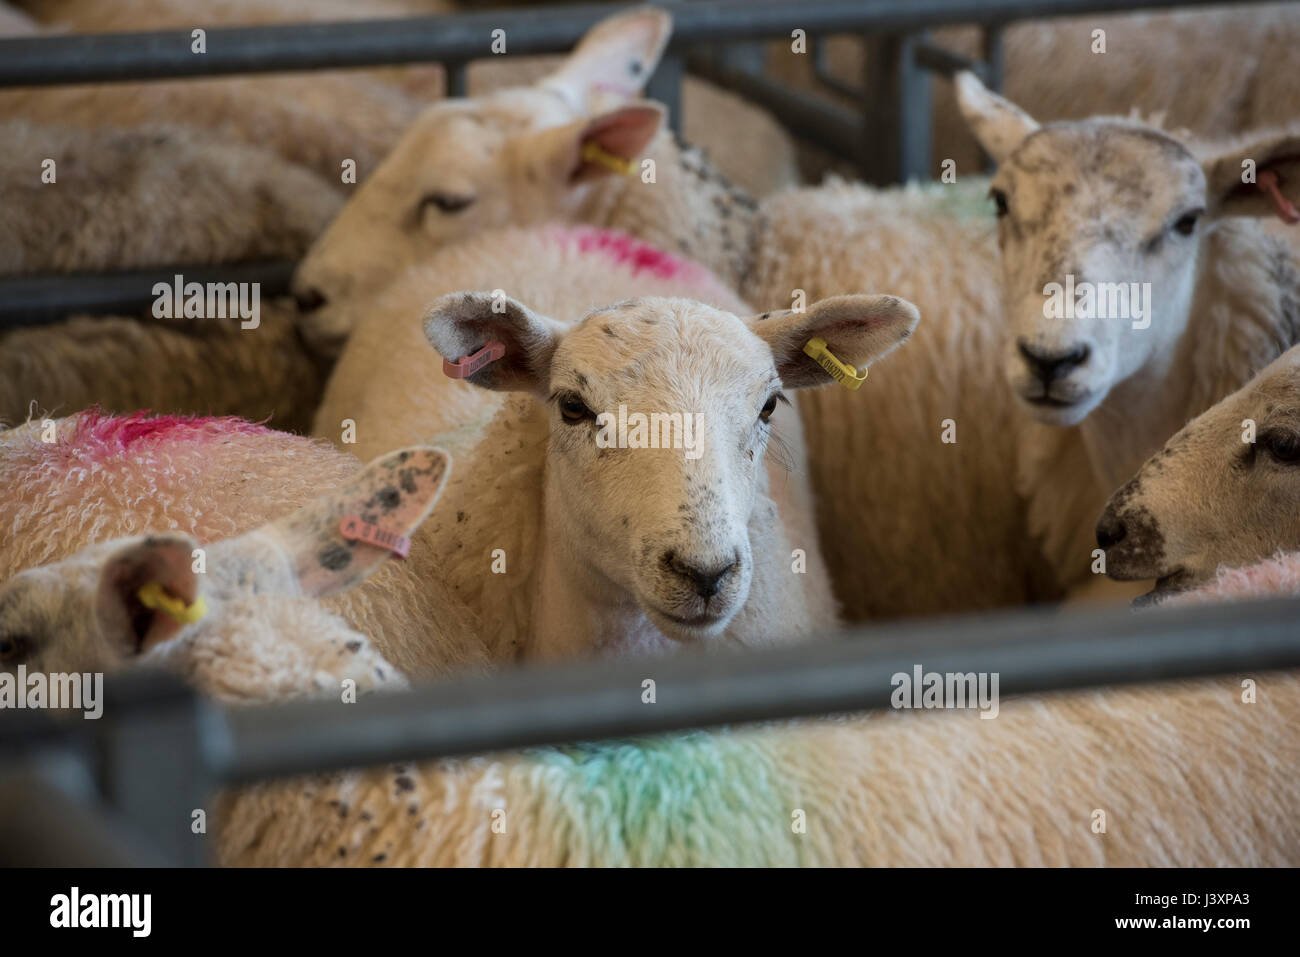 Lambs in pens at Bakewell livestock market, Bakewell, Derbyshire. - Stock Image